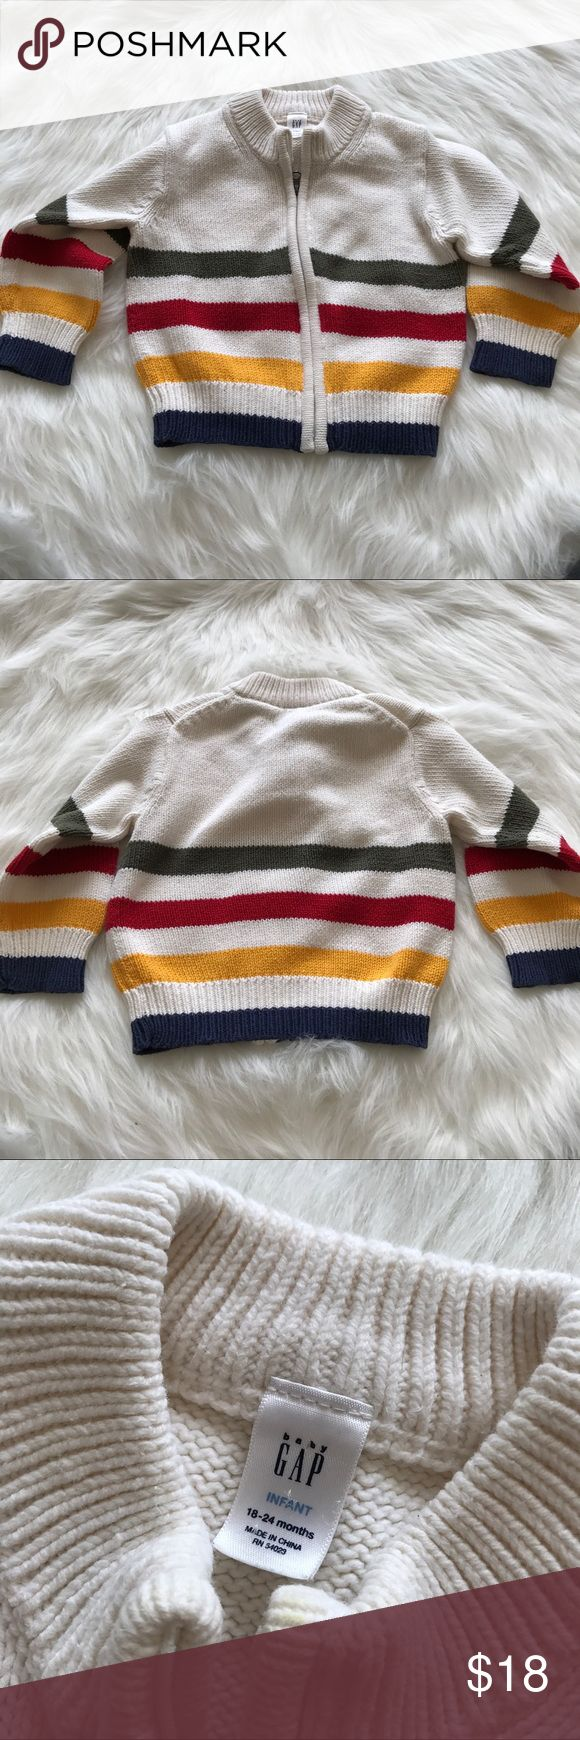 Vintage Baby Gap Striped Zip Up Knit Jacket Excellent Pre-Owned Condition. GAP Jackets & Coats